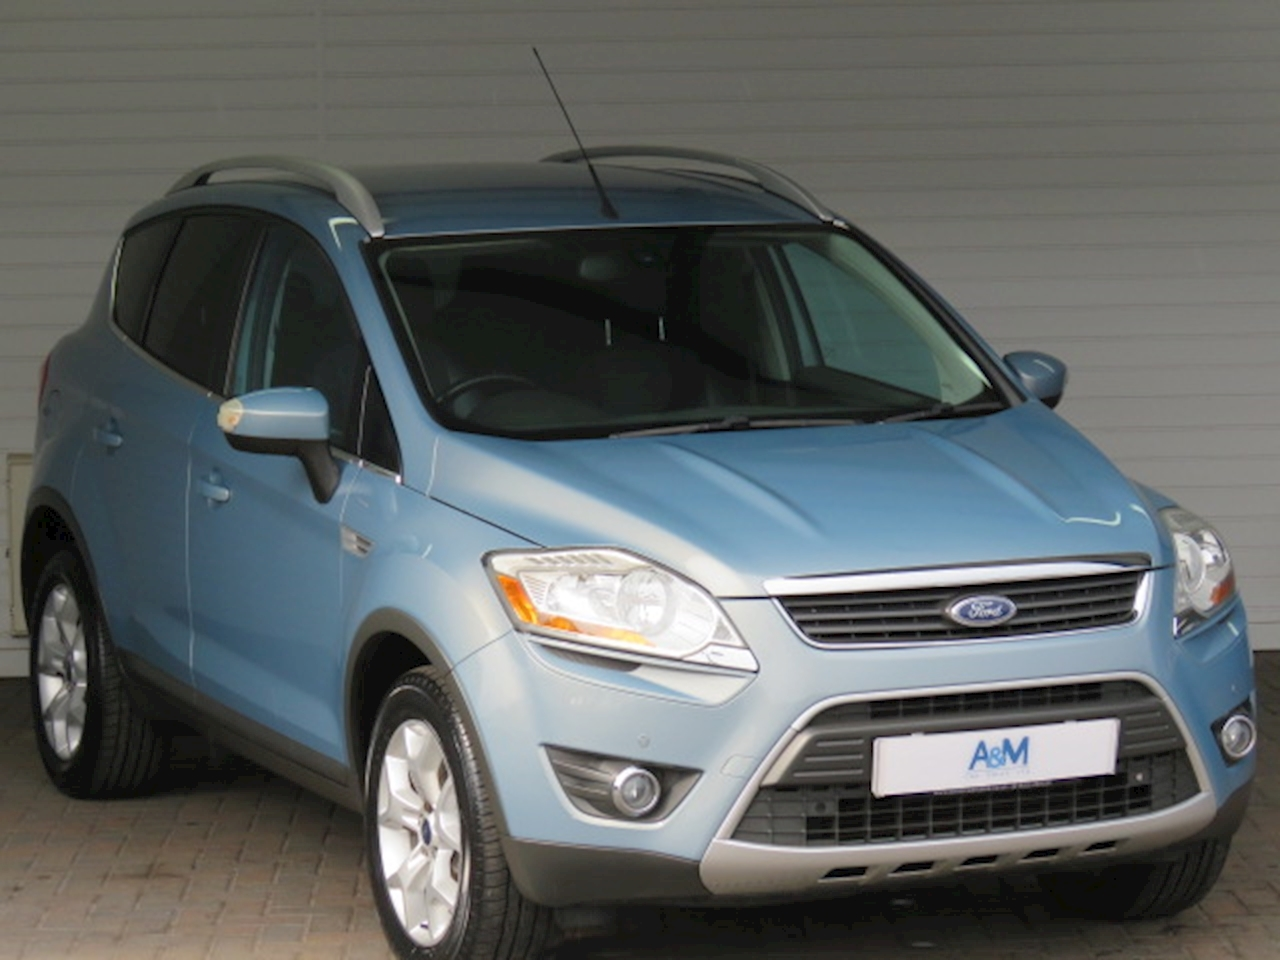 Ford Kuga Titanium SUV 2.0 Manual Diesel